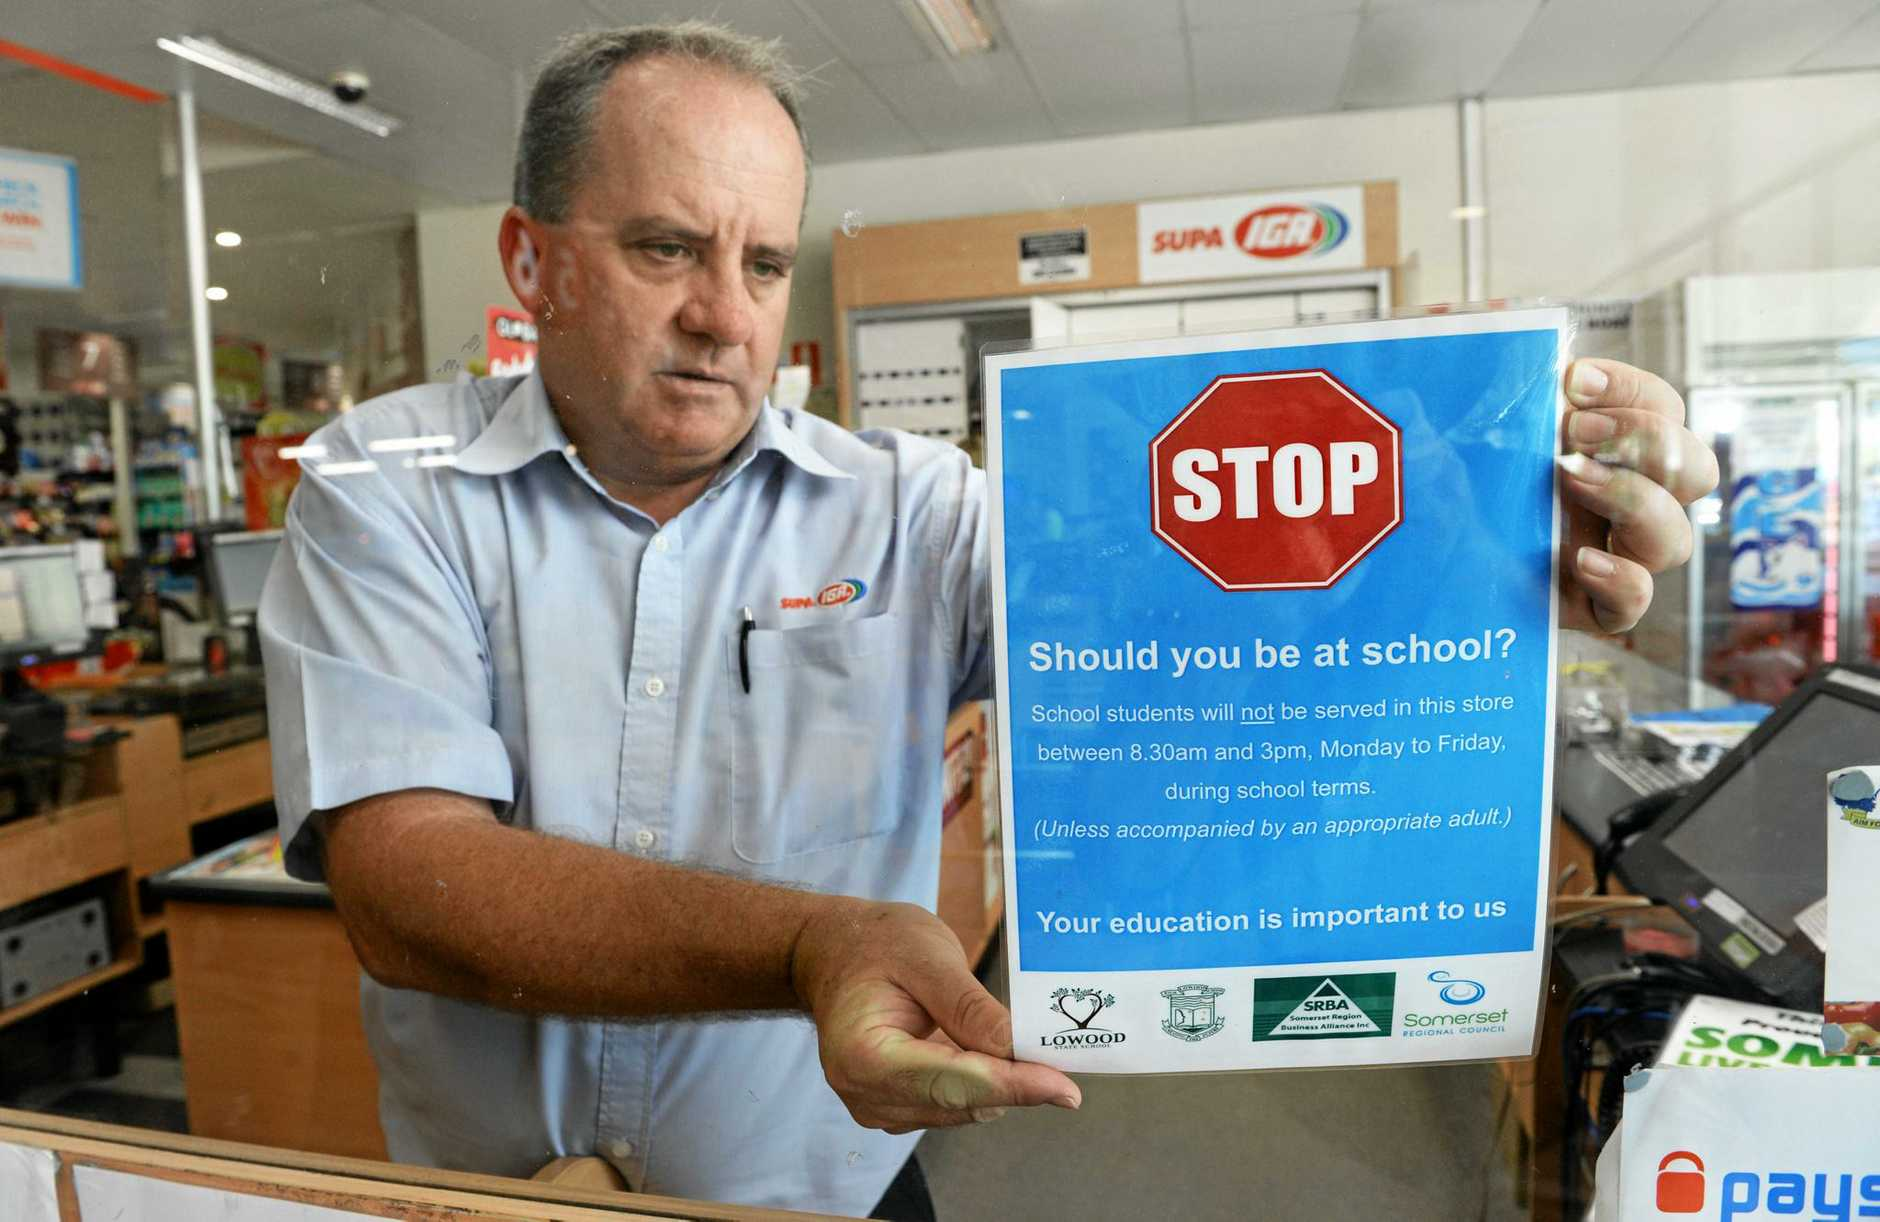 Supa IGA Lowood owner Toby Whitten will not be serving school children during school hours.